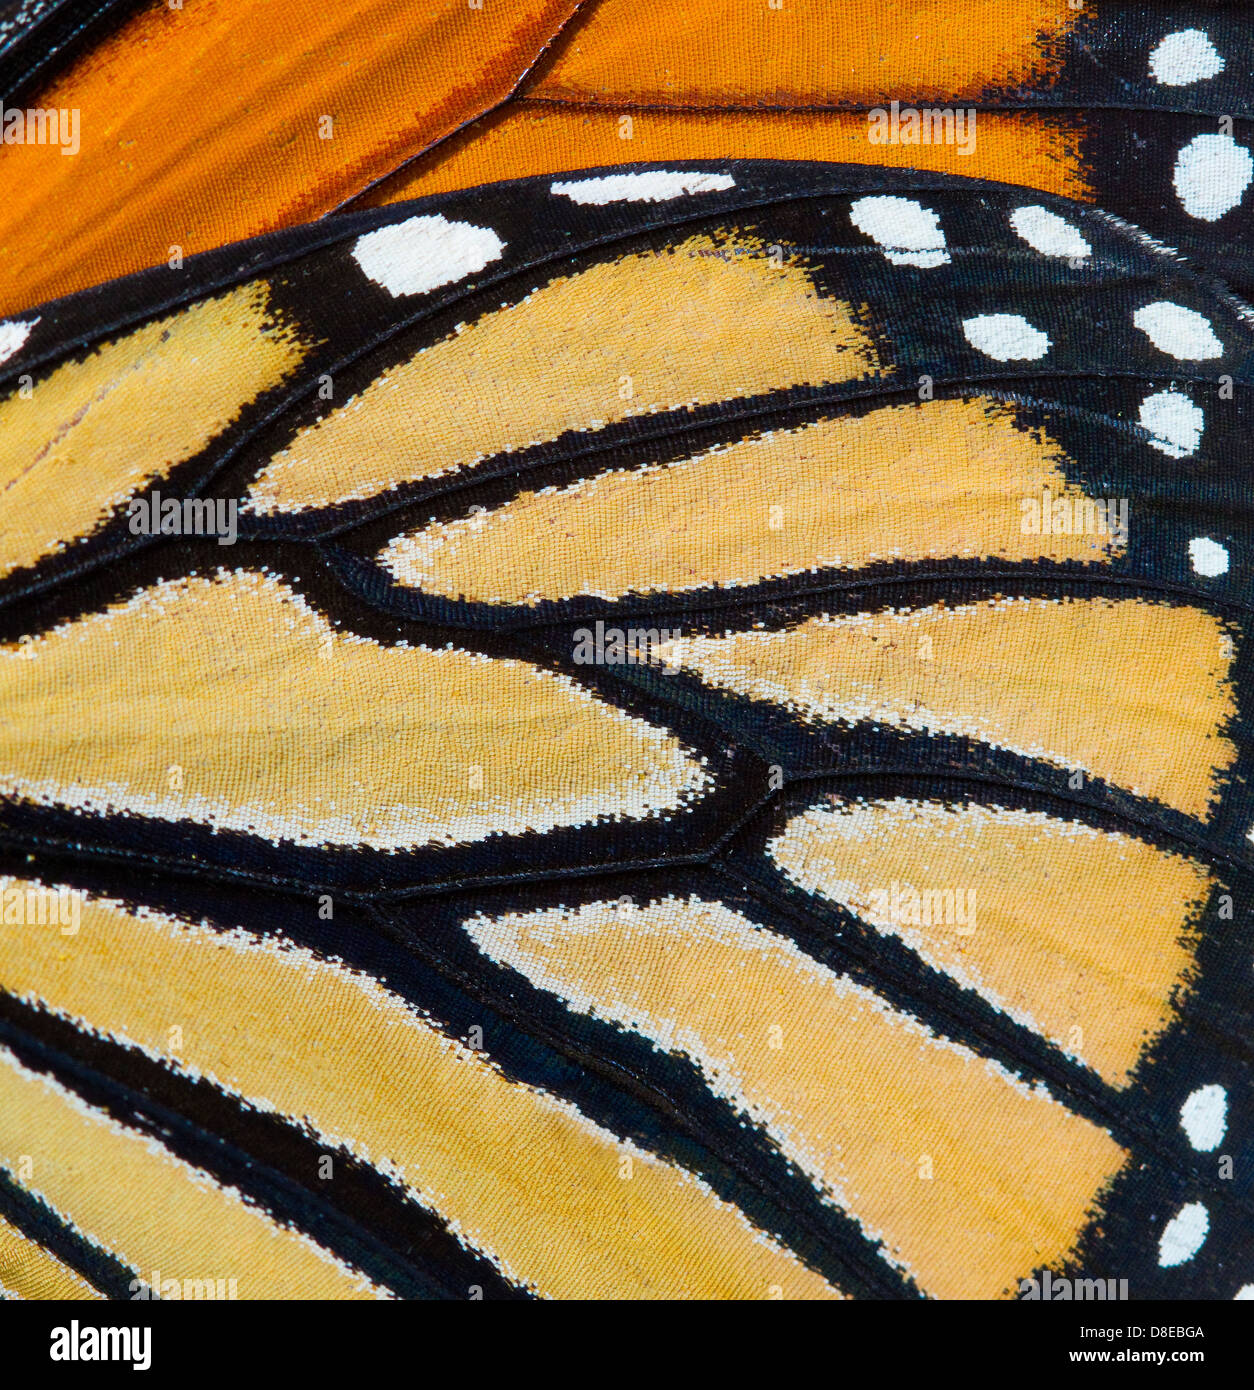 MONARCH BUTTERFLY (Danaus plexippus) wing detail, Florida, USA. Stock Photo